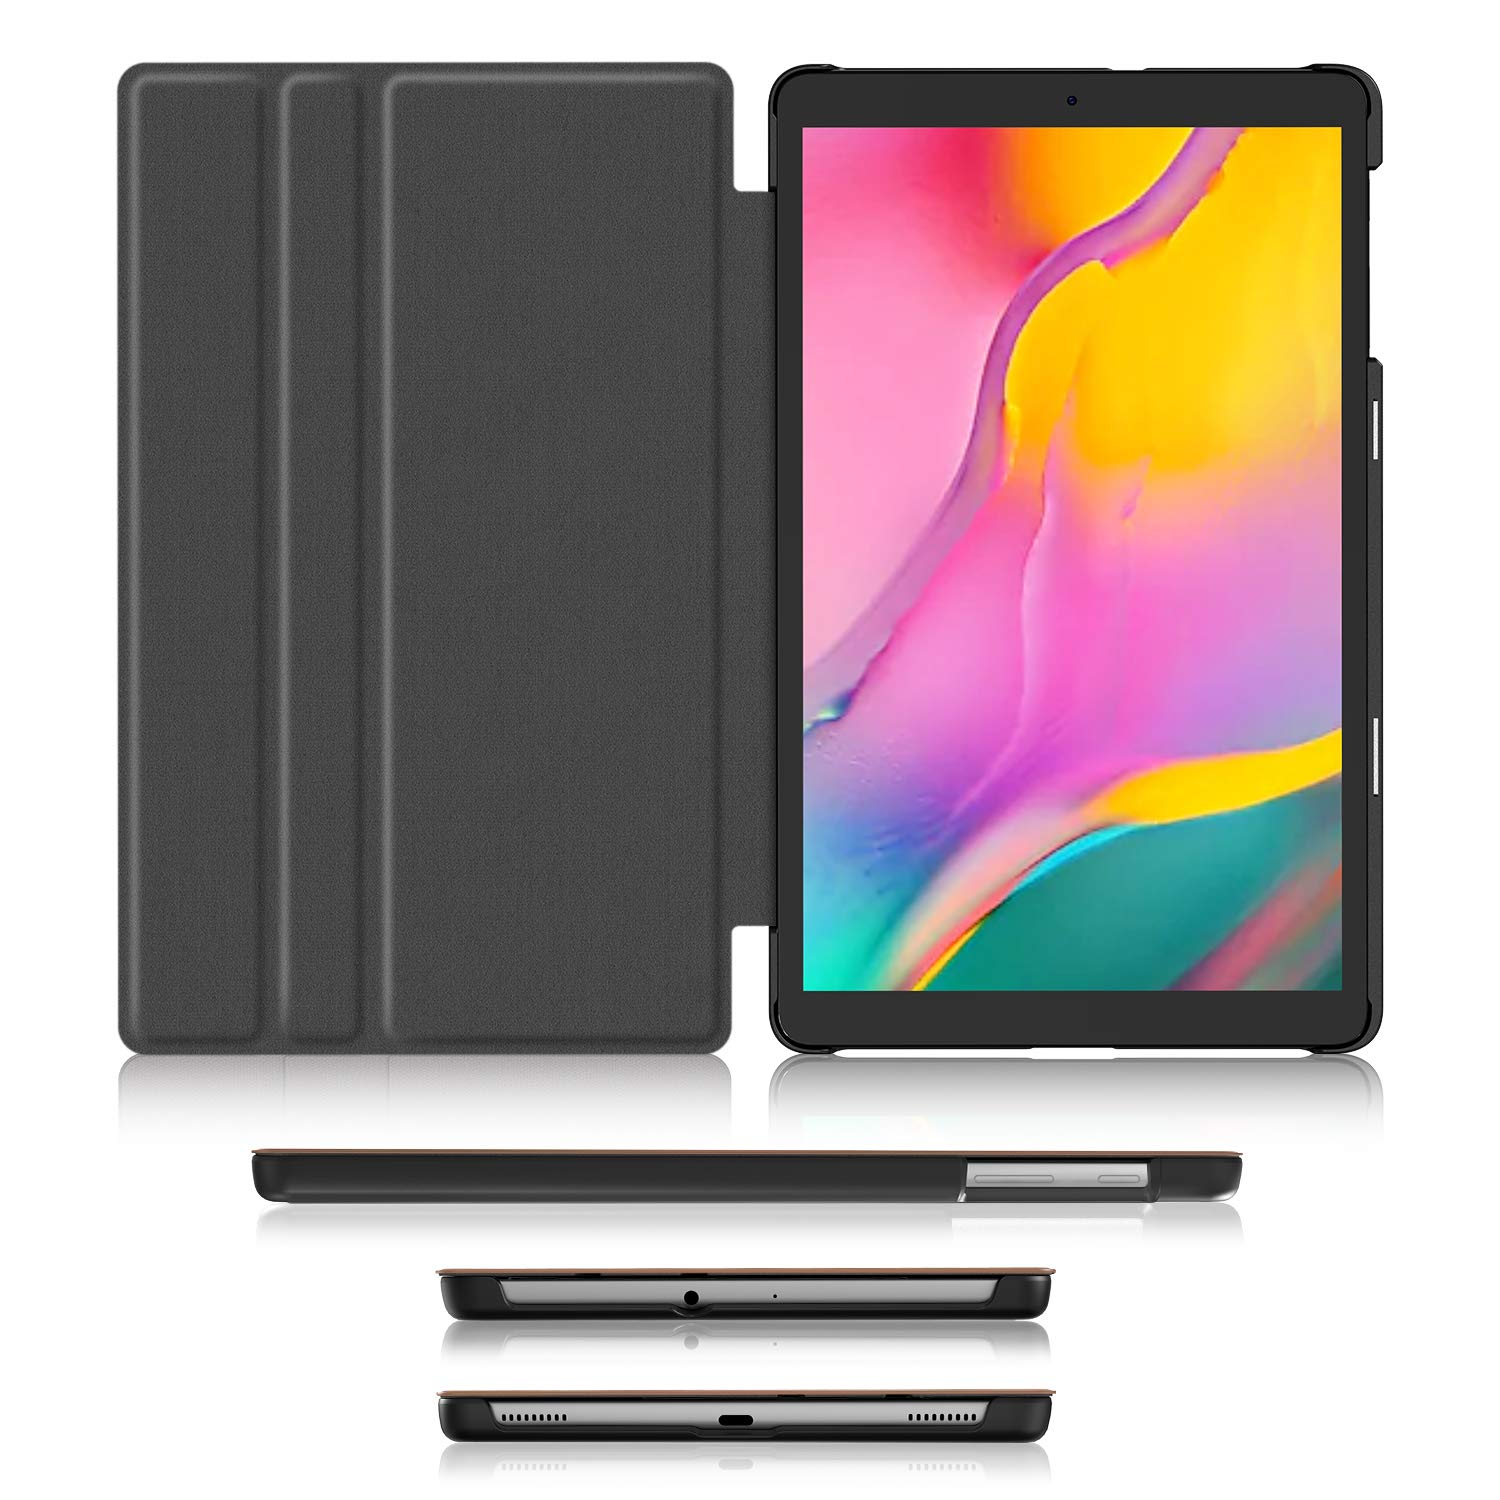 Soft TPU Back Cover for Samsung Galaxy Tab A 10.1 inch Tablet Premium Shock Proof Stand Folio Case Soke Galaxy Tab A 10.1 Case 2019 ,Black SM-T510//T515 Multi- Viewing Angles